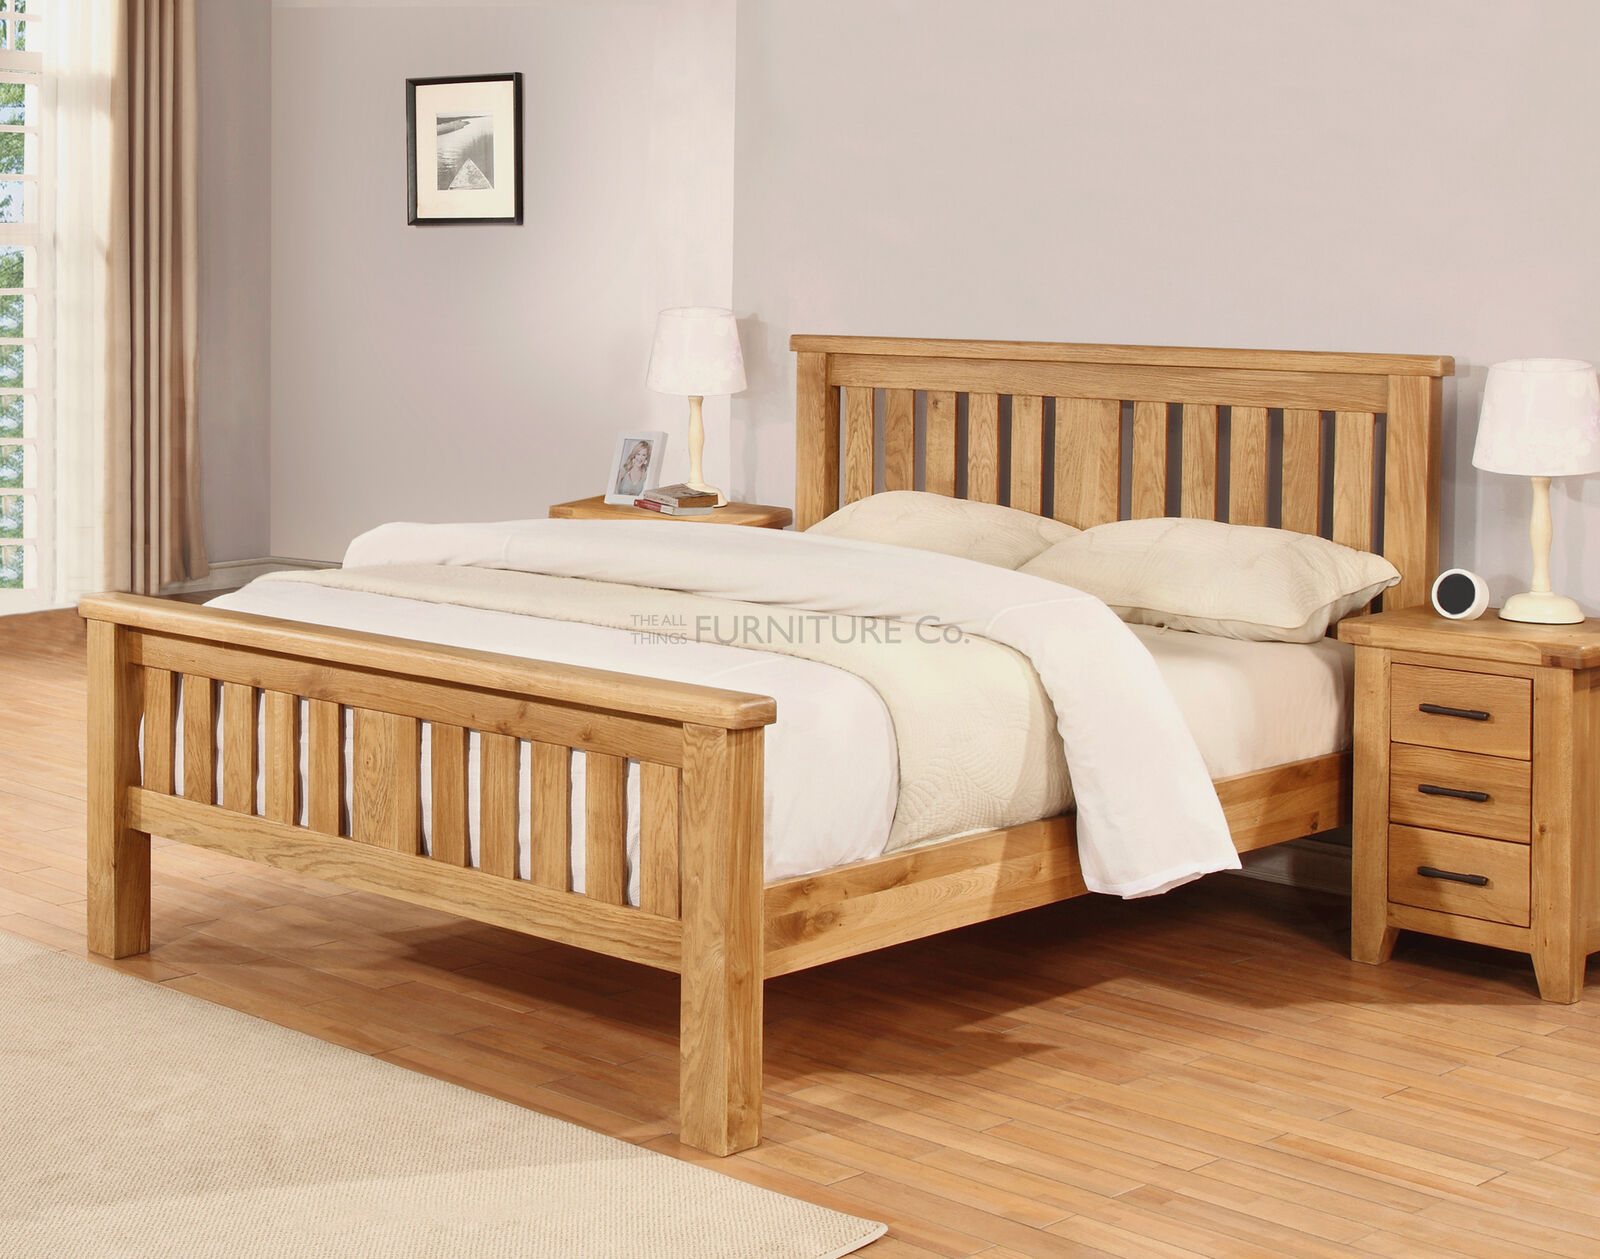 Heimdall 100 Solid Oak Wooden Bed Frame 4ft6 Double 5ft King 6ft Super